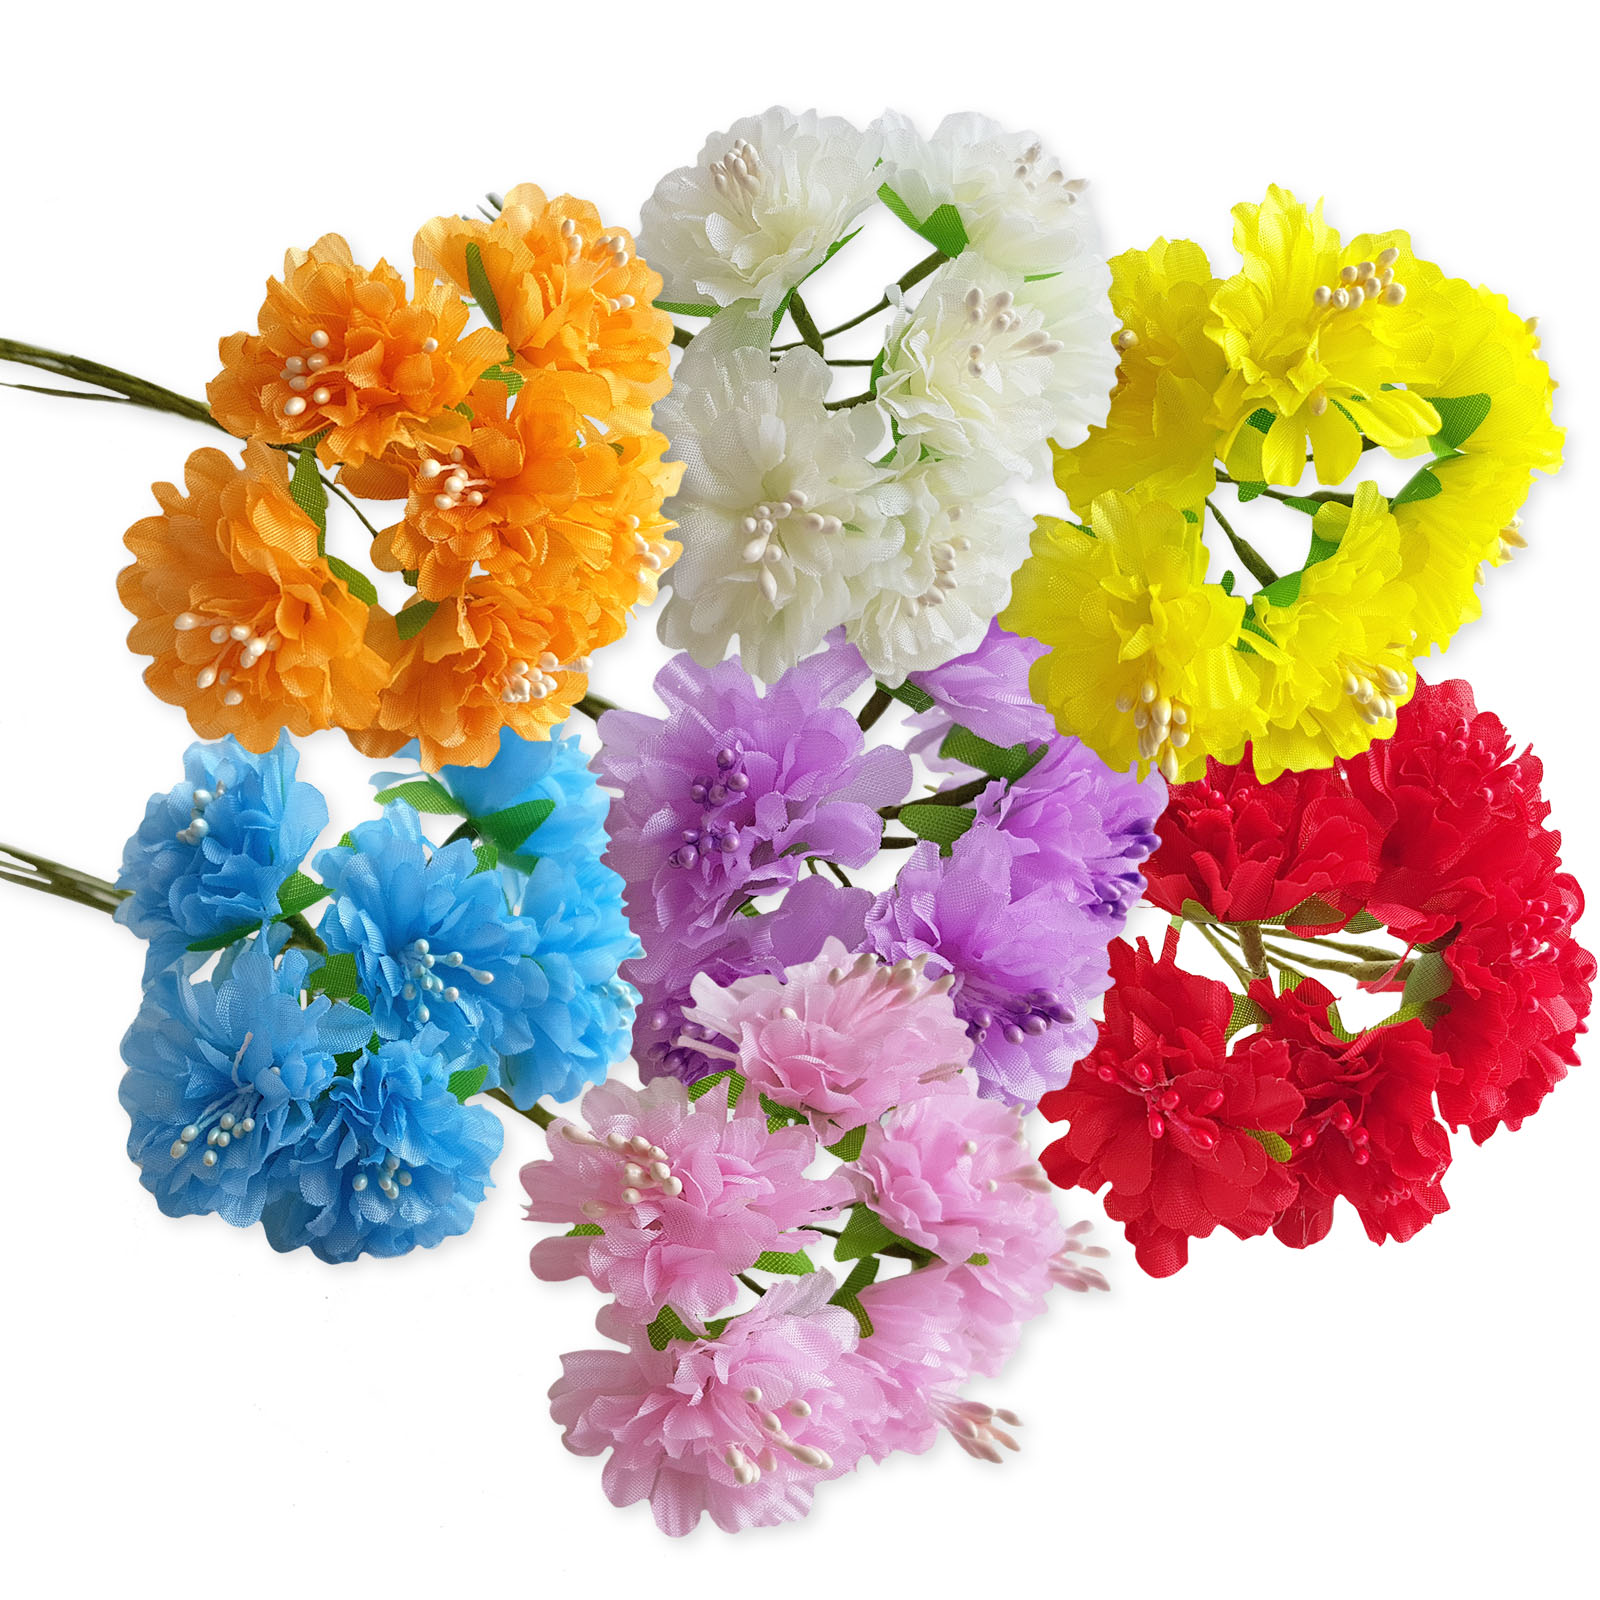 6pcs Artificial Carnation Craft Flowers Hair Garland Floral Decoration Wedding